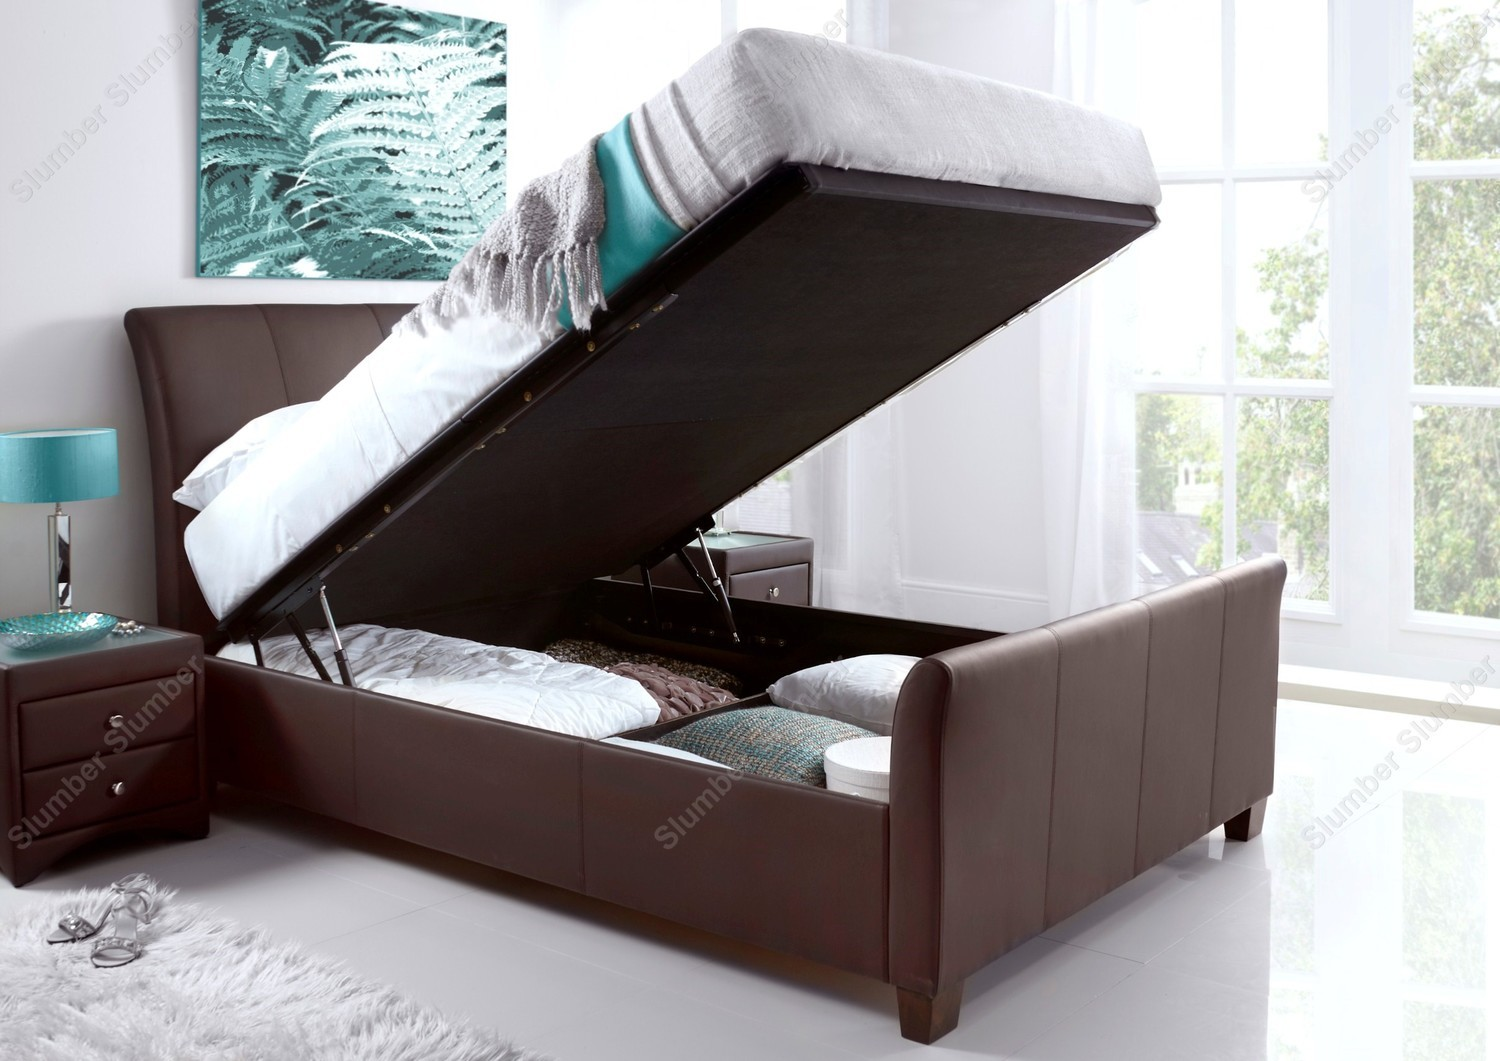 Kaydian Allendale Ottoman Storage Bed Frame brown bonded leather